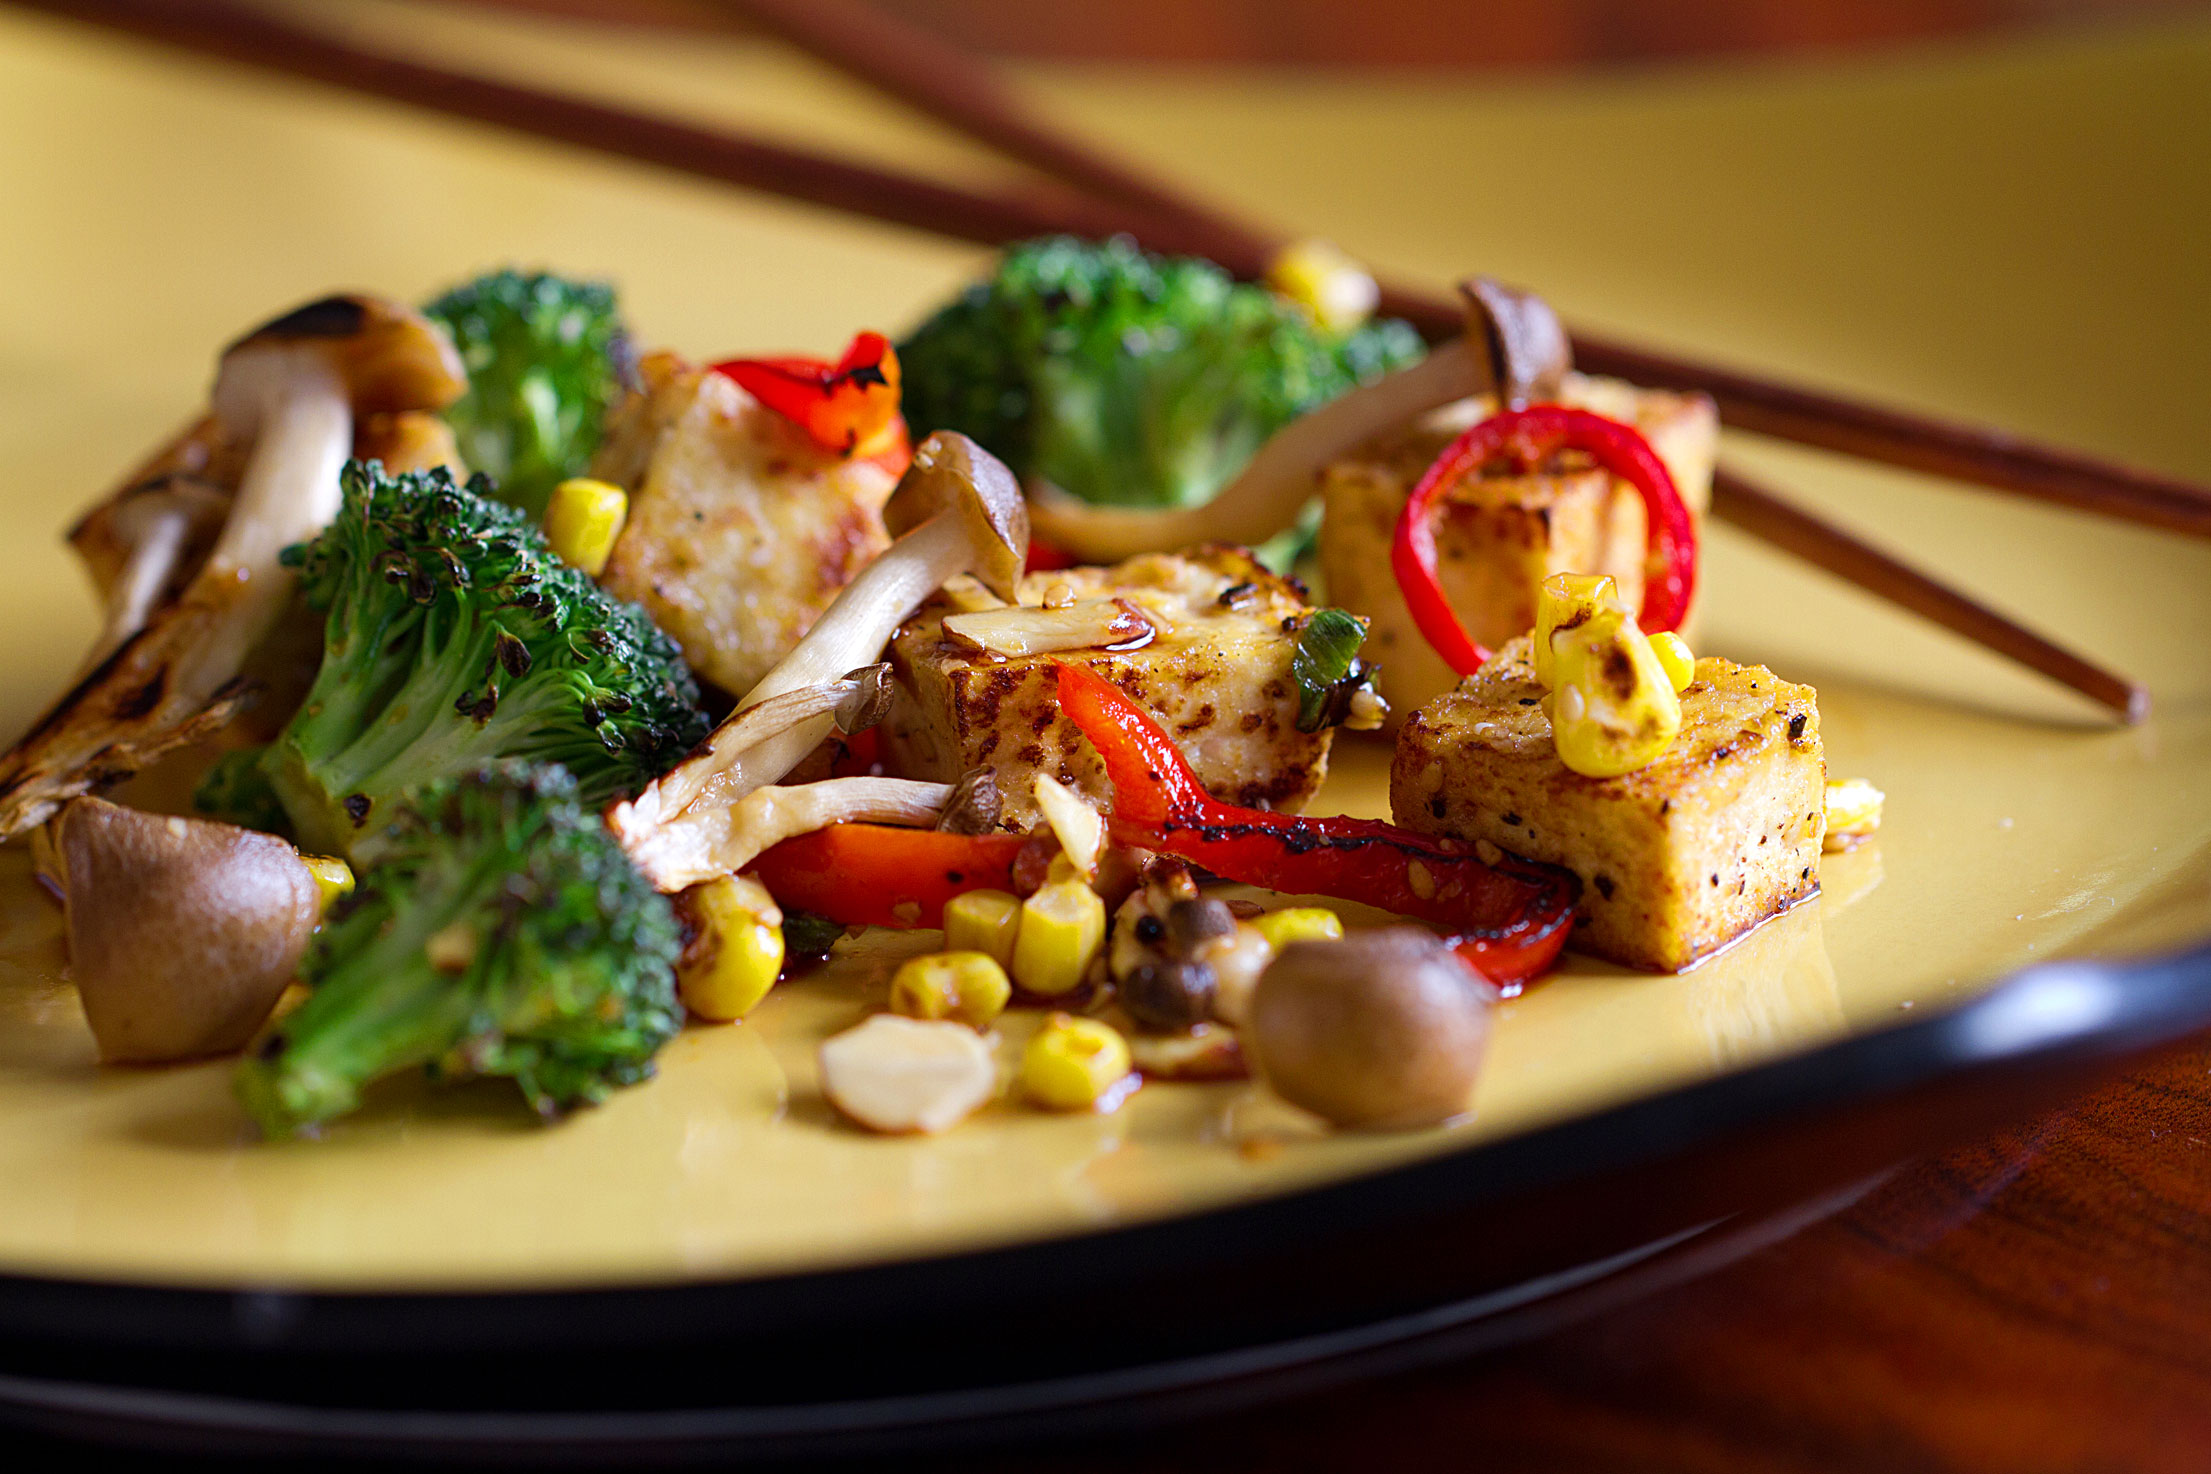 Tofu Stir-Fry with Veggies and Beech Mushrooms